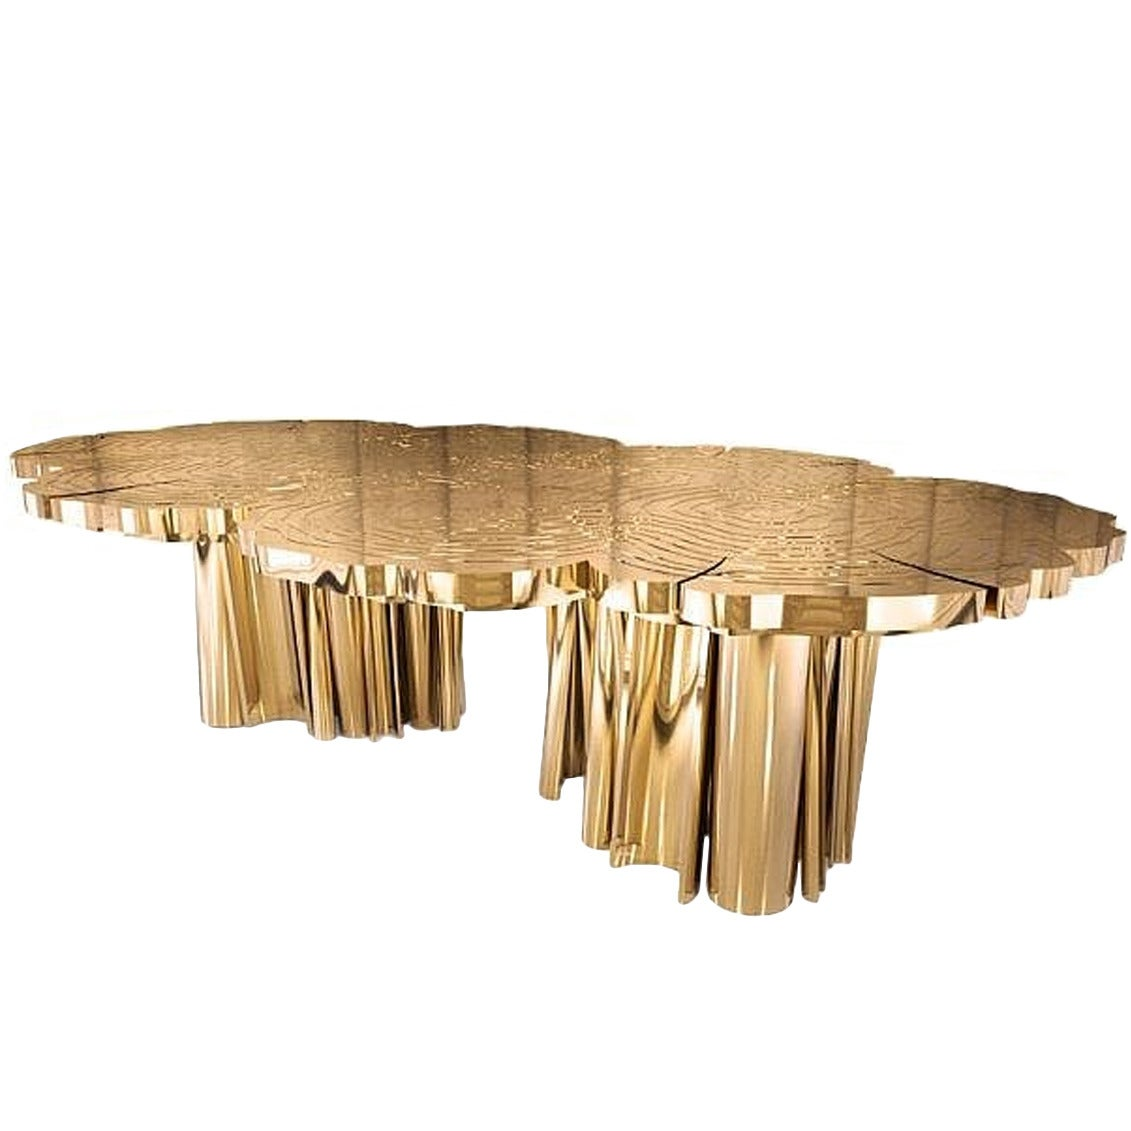 Dining or Conference Table in Polished Brass and Gold  : FortunaDiningTable2 1 from www.1stdibs.com size 1131 x 1131 jpeg 86kB